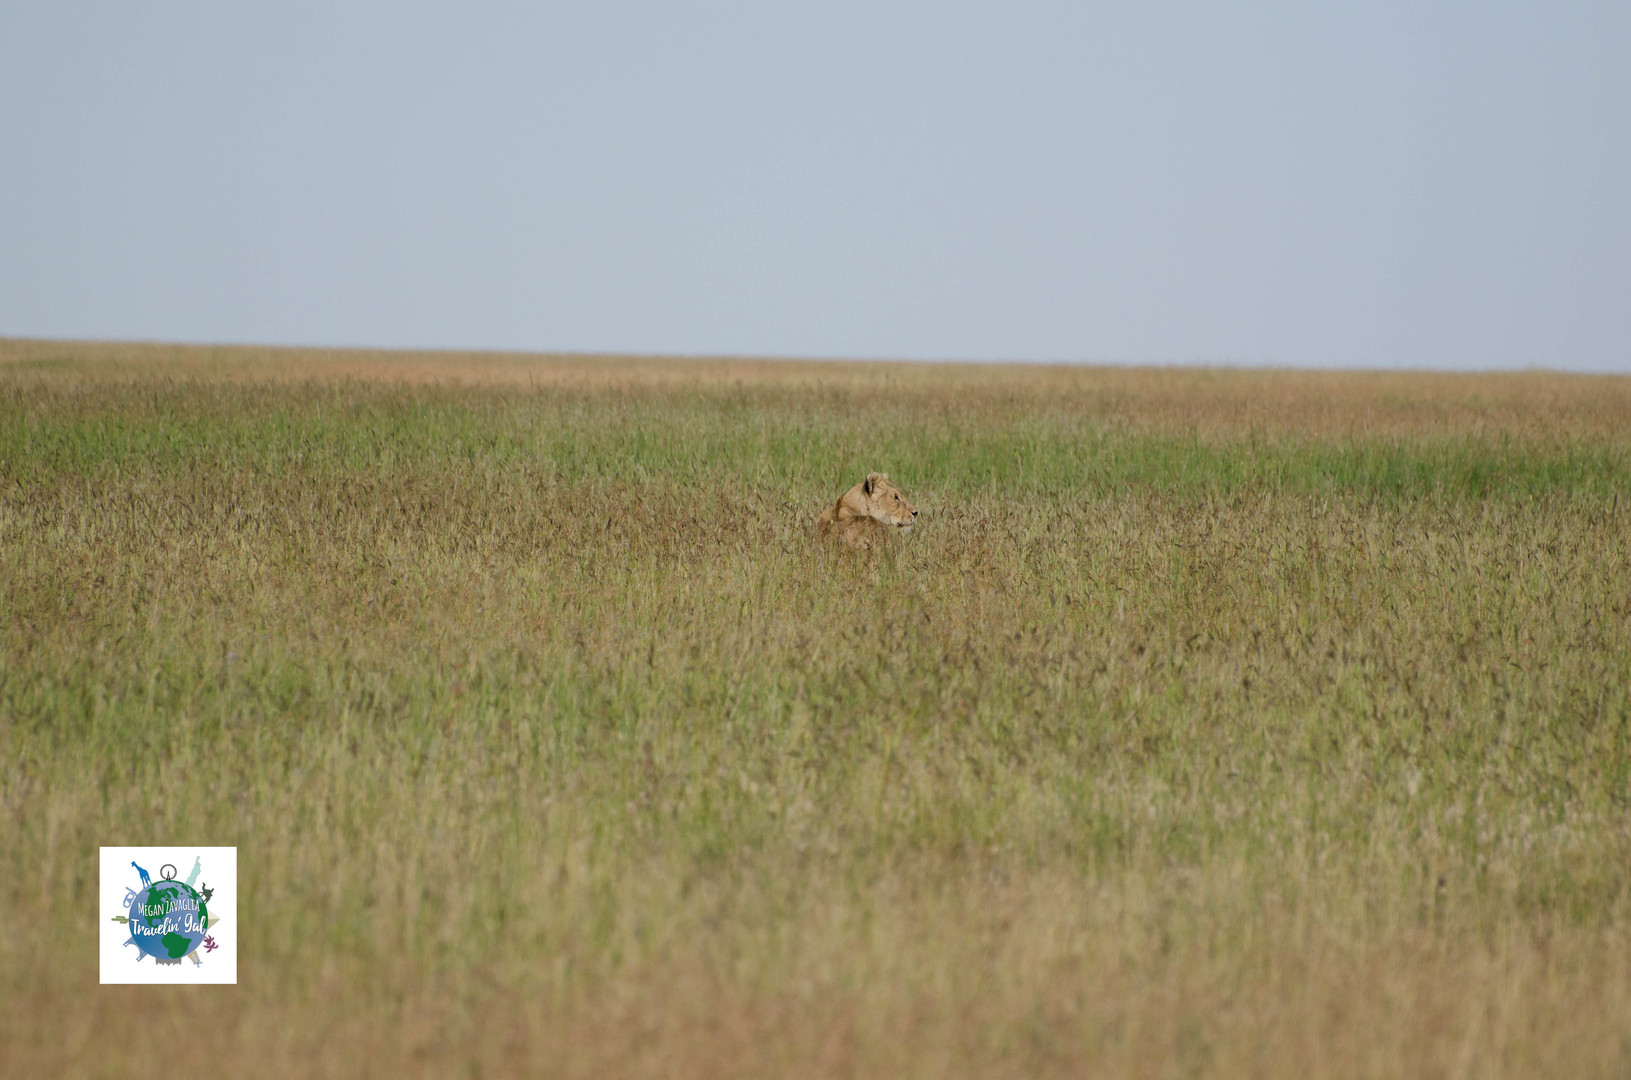 Lion in grass.jpg